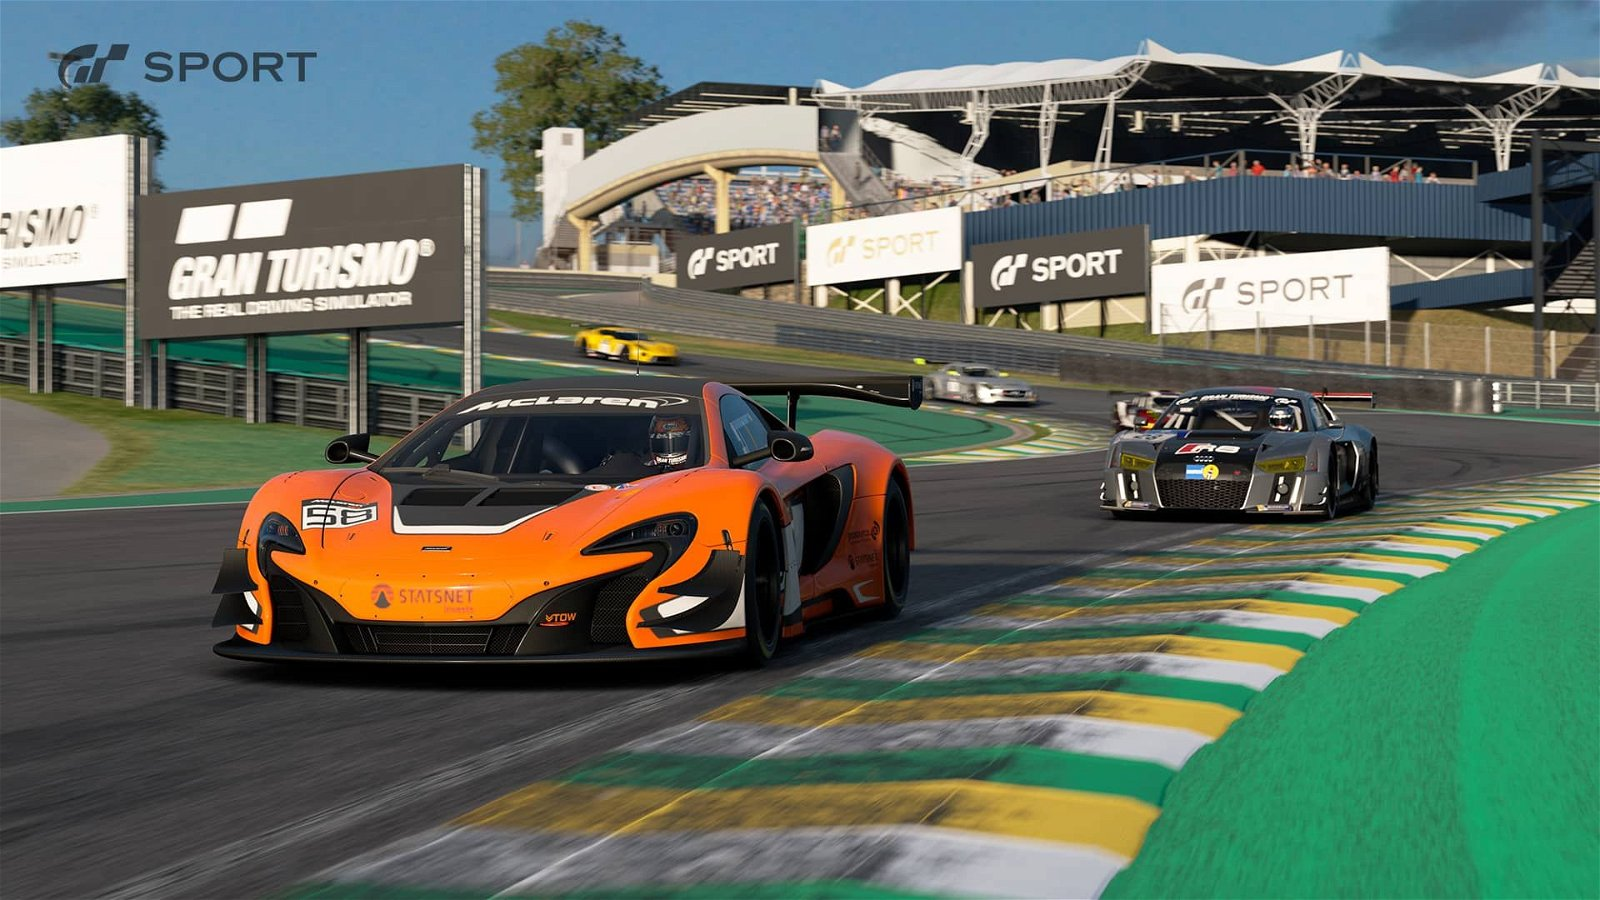 Gran Turismo Sport (Ps4) Review: Pretty But Stripped Down 3